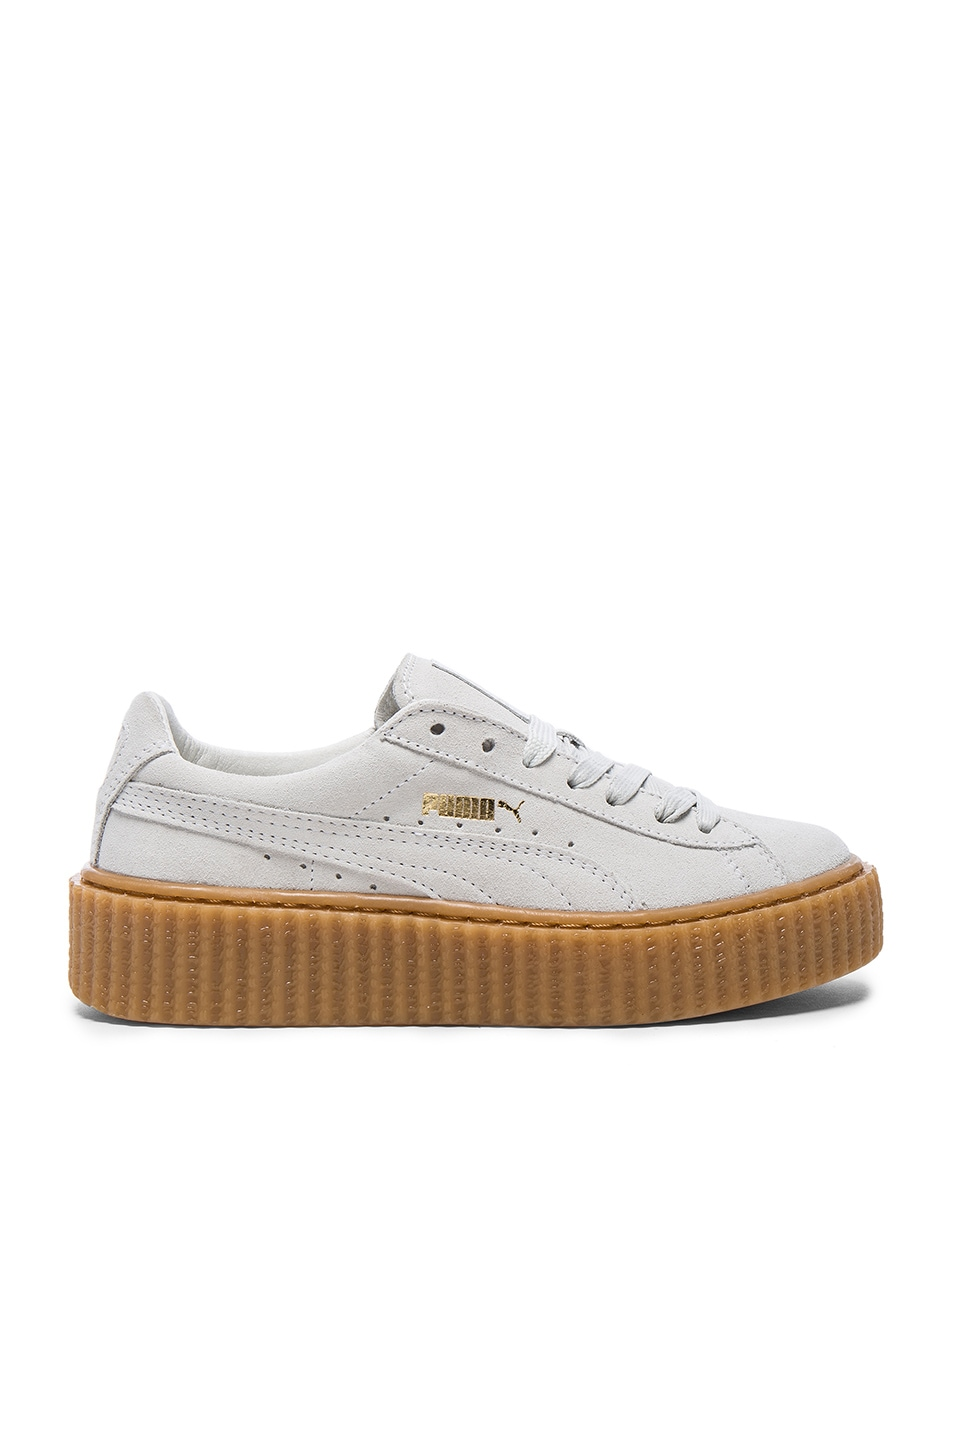 Image 1 of Fenty by Puma Suede Creepers in Star White